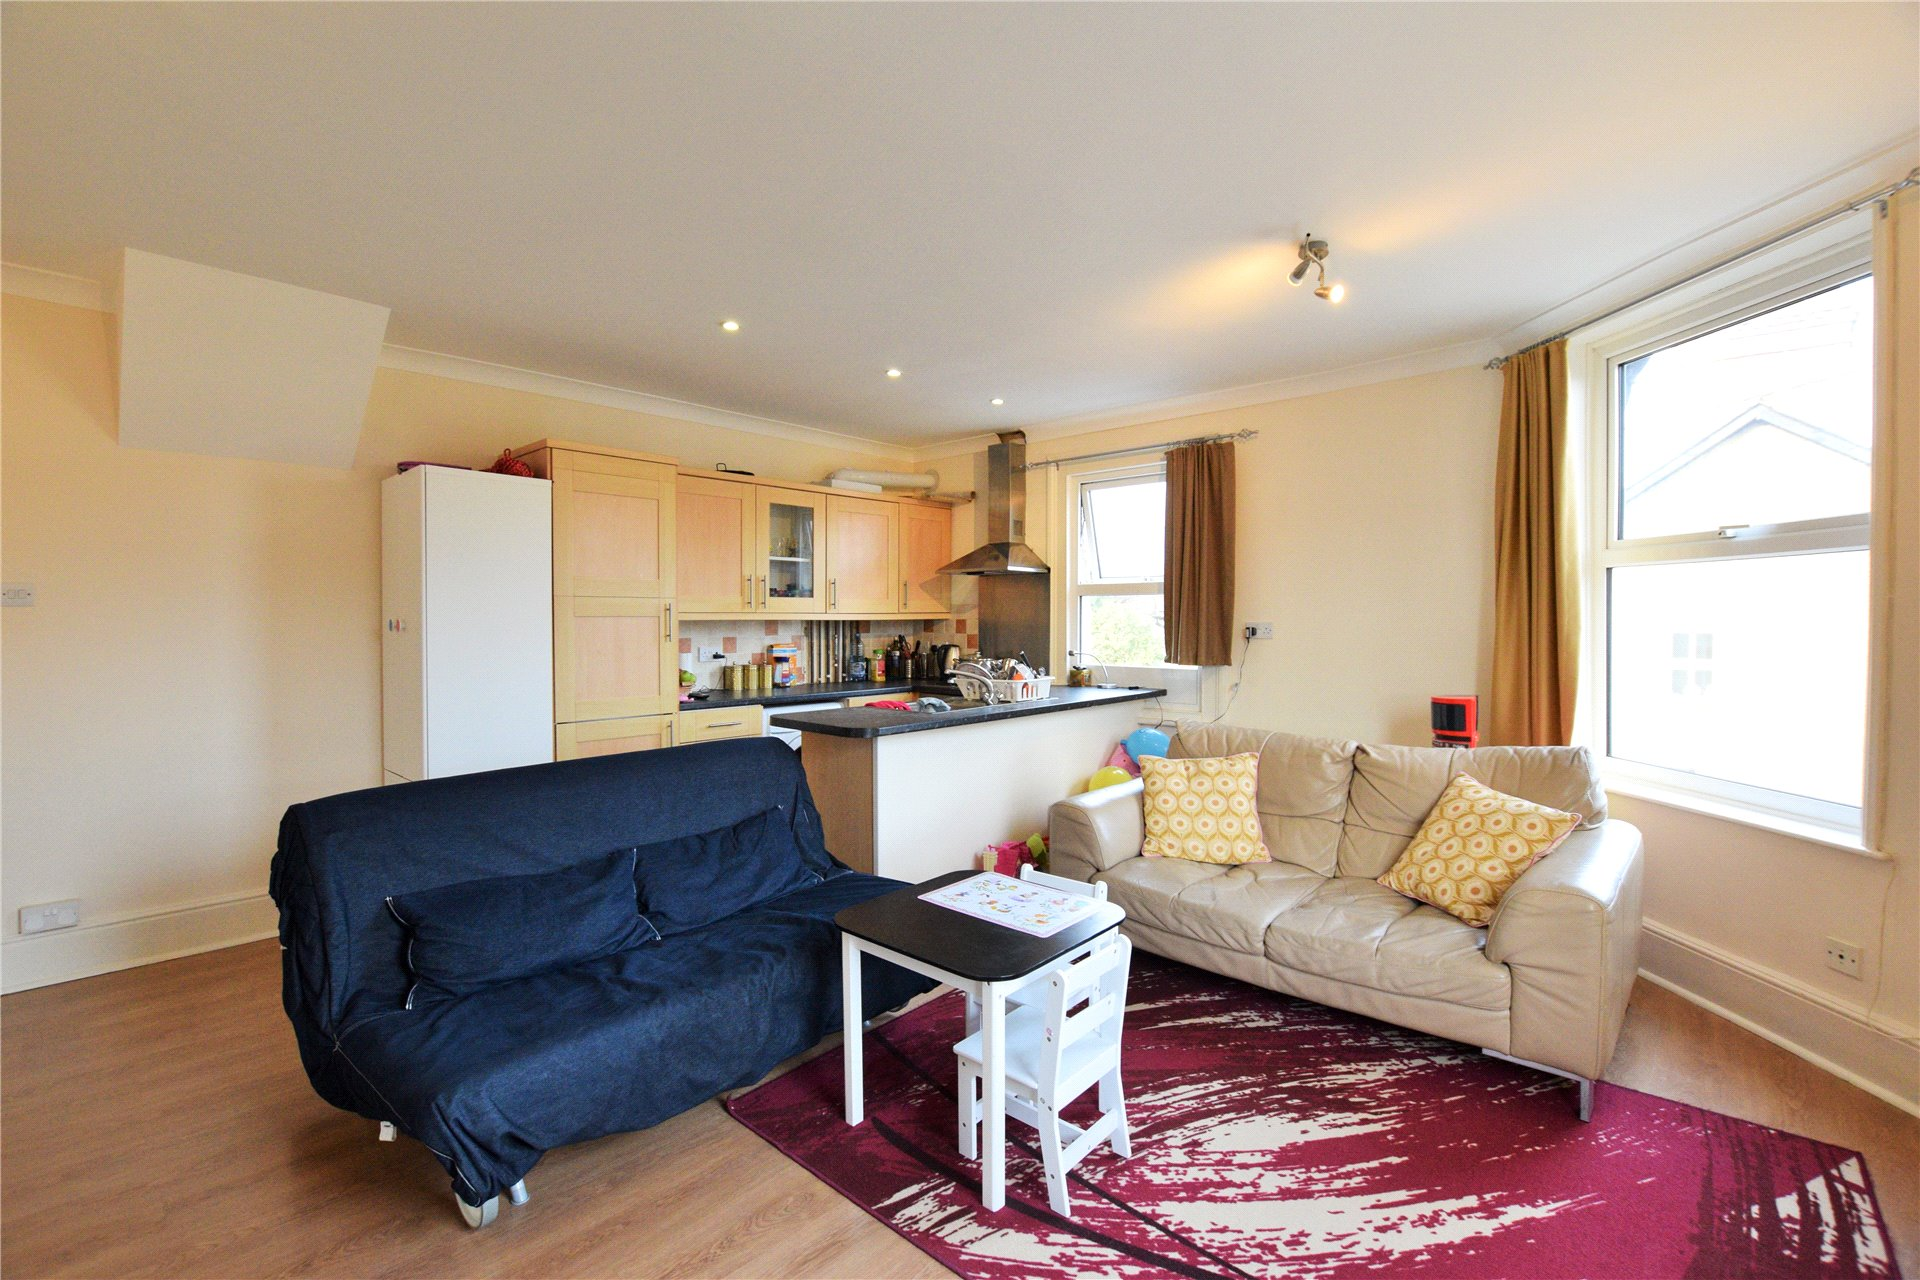 2 Bedrooms Maisonette Flat for rent in Vicarage Road, Blackwater, Camberley, Hampshire, GU17